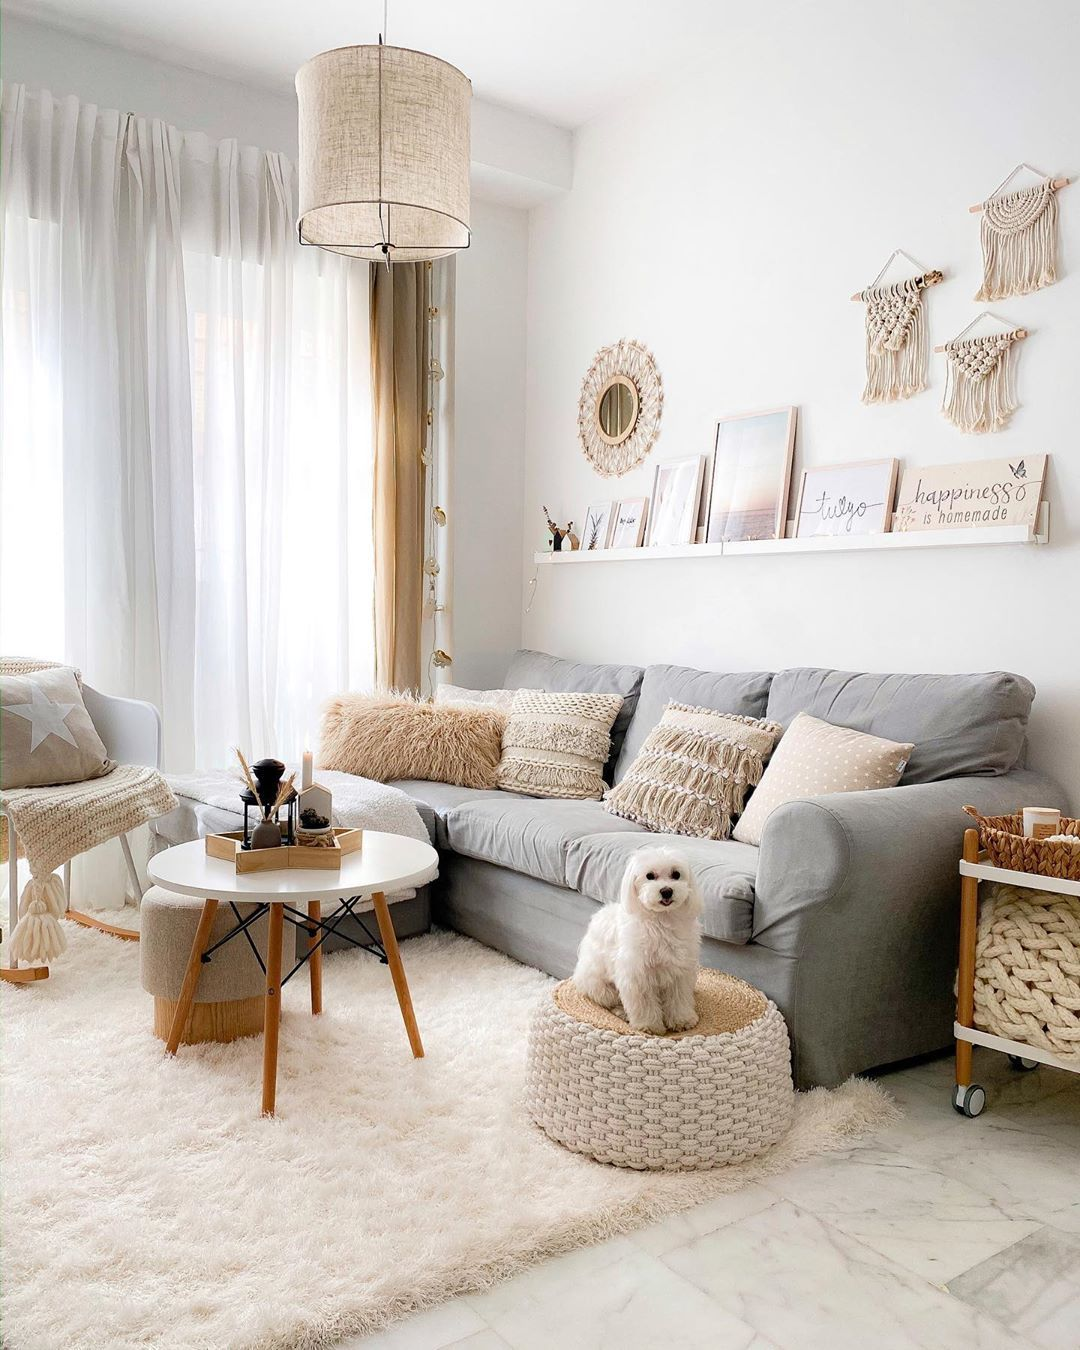 Bright Cozy Living Room Idea With Pets In 2020 Comfy Living